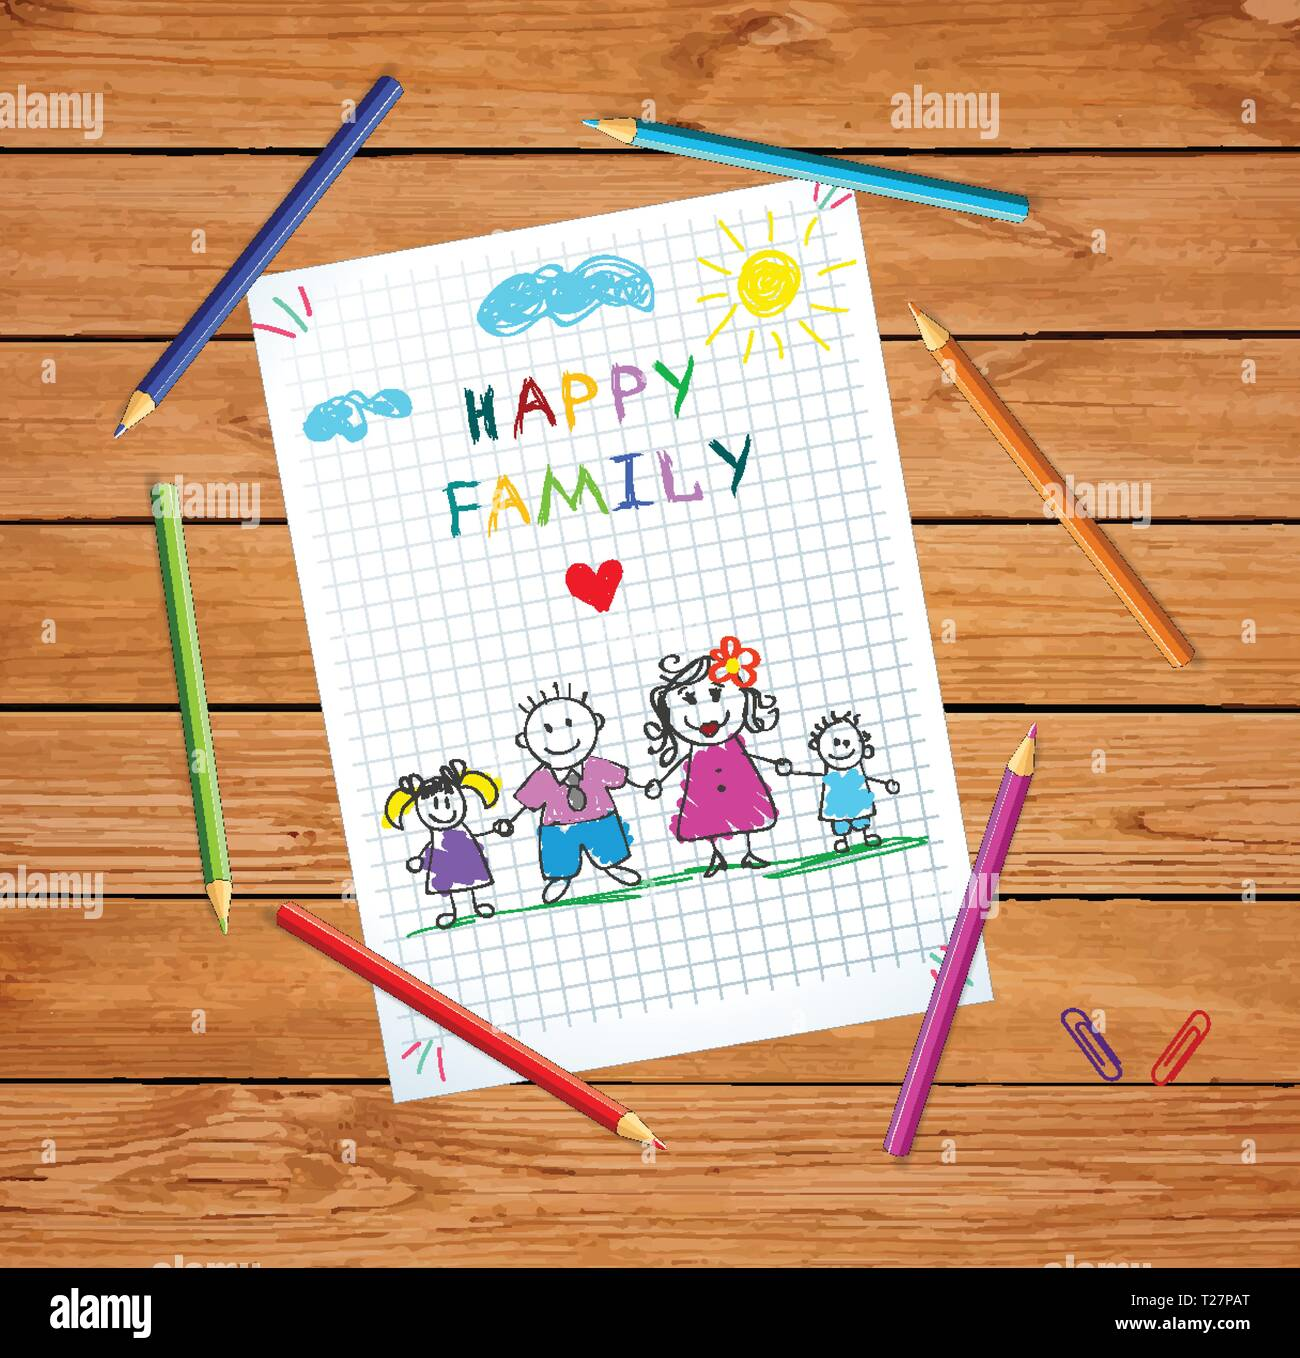 Young Parents Holding Hands of Children. Happy Family Day Greeting Card on Wooden Table Background with Colored Pencils Around. Doodle Style. Baby Dra - Stock Vector